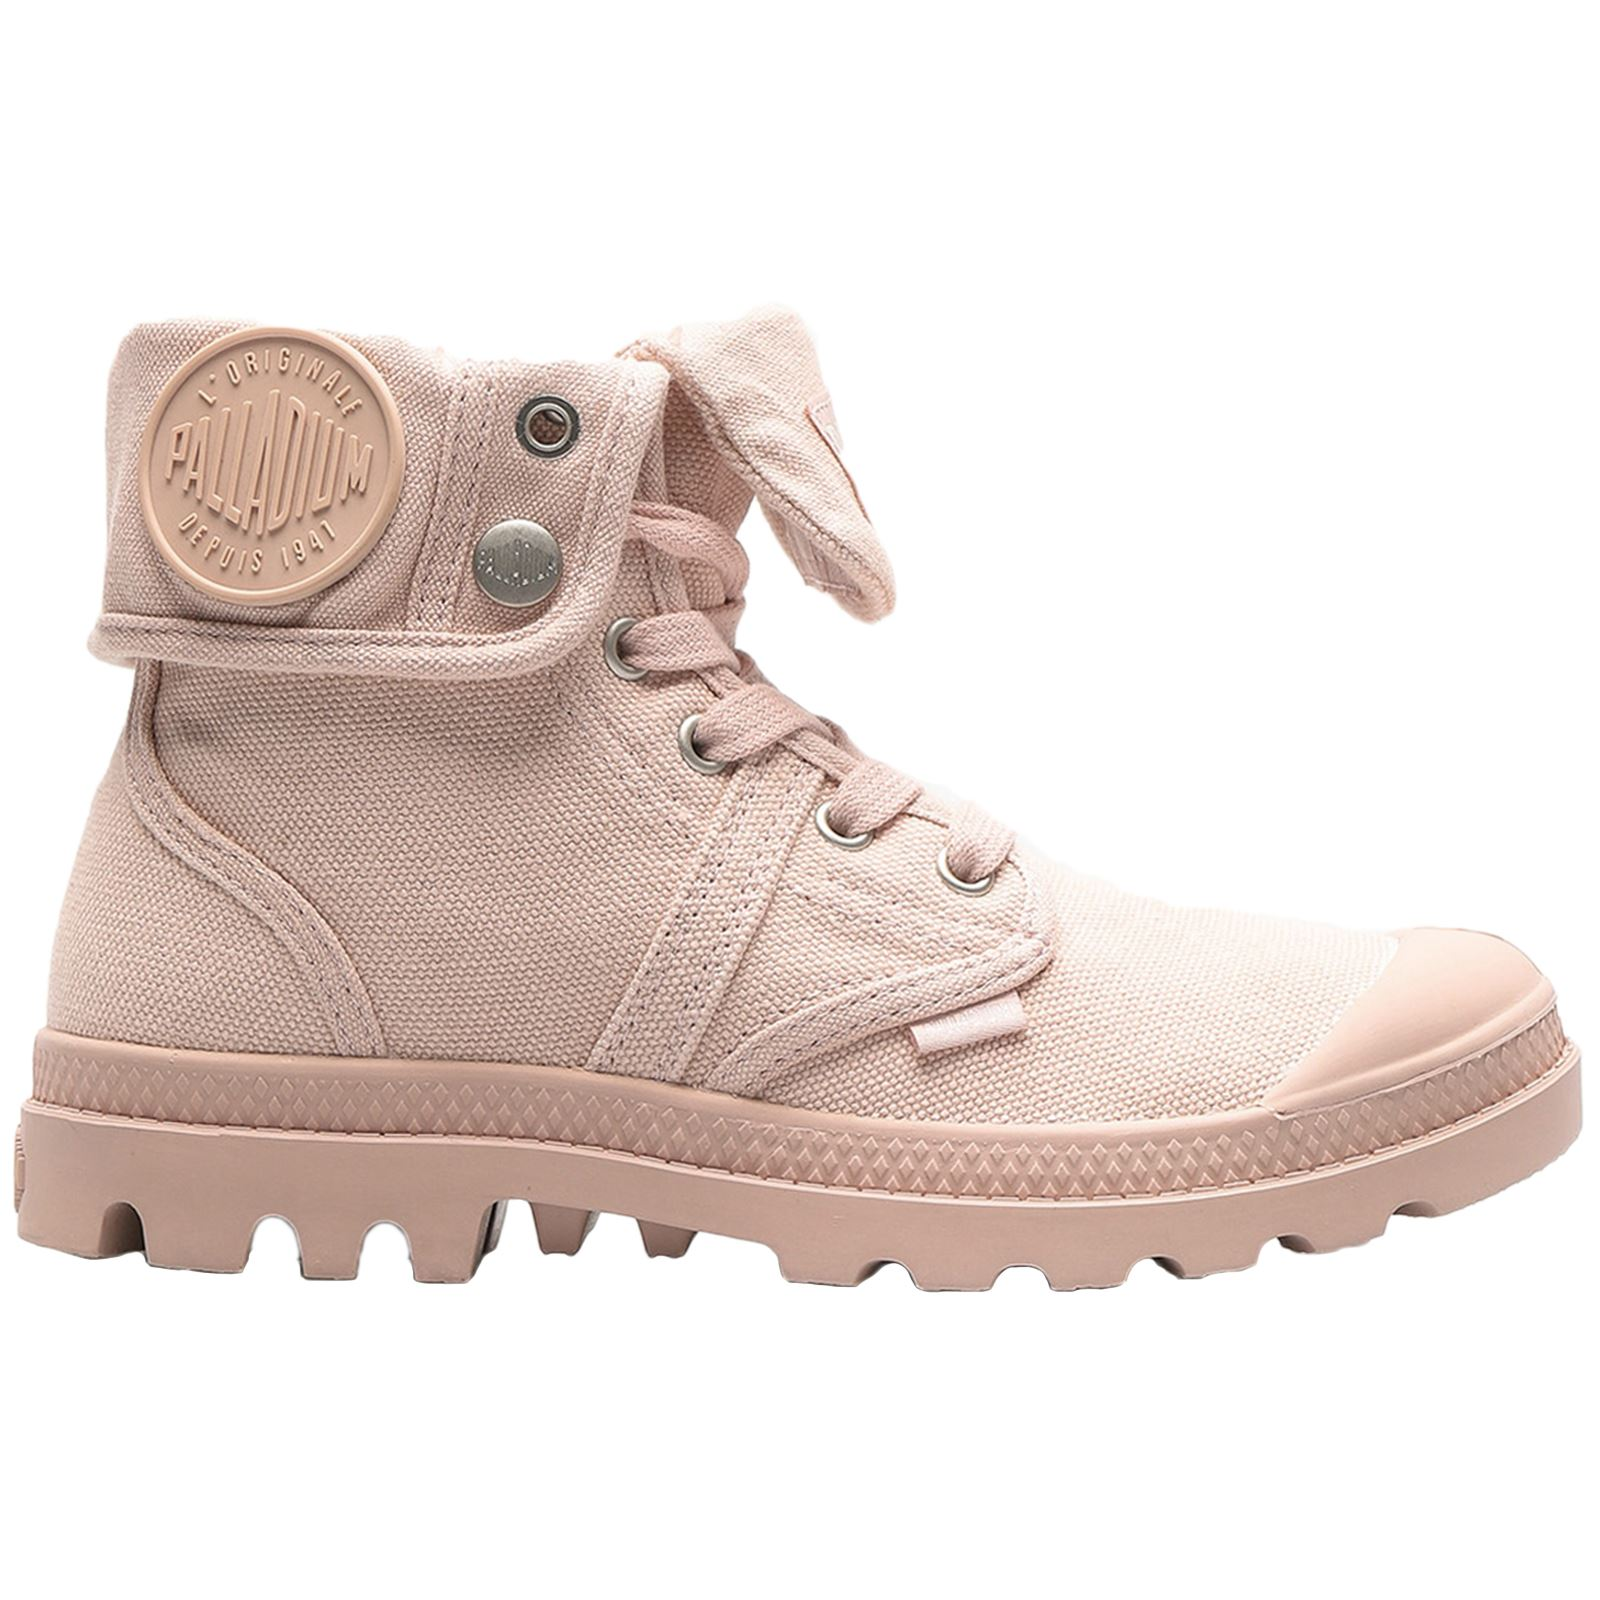 Details about Palladium Pallabrouse Baggy Peach Whip Womens Canvas Fold Down Ankle Boots